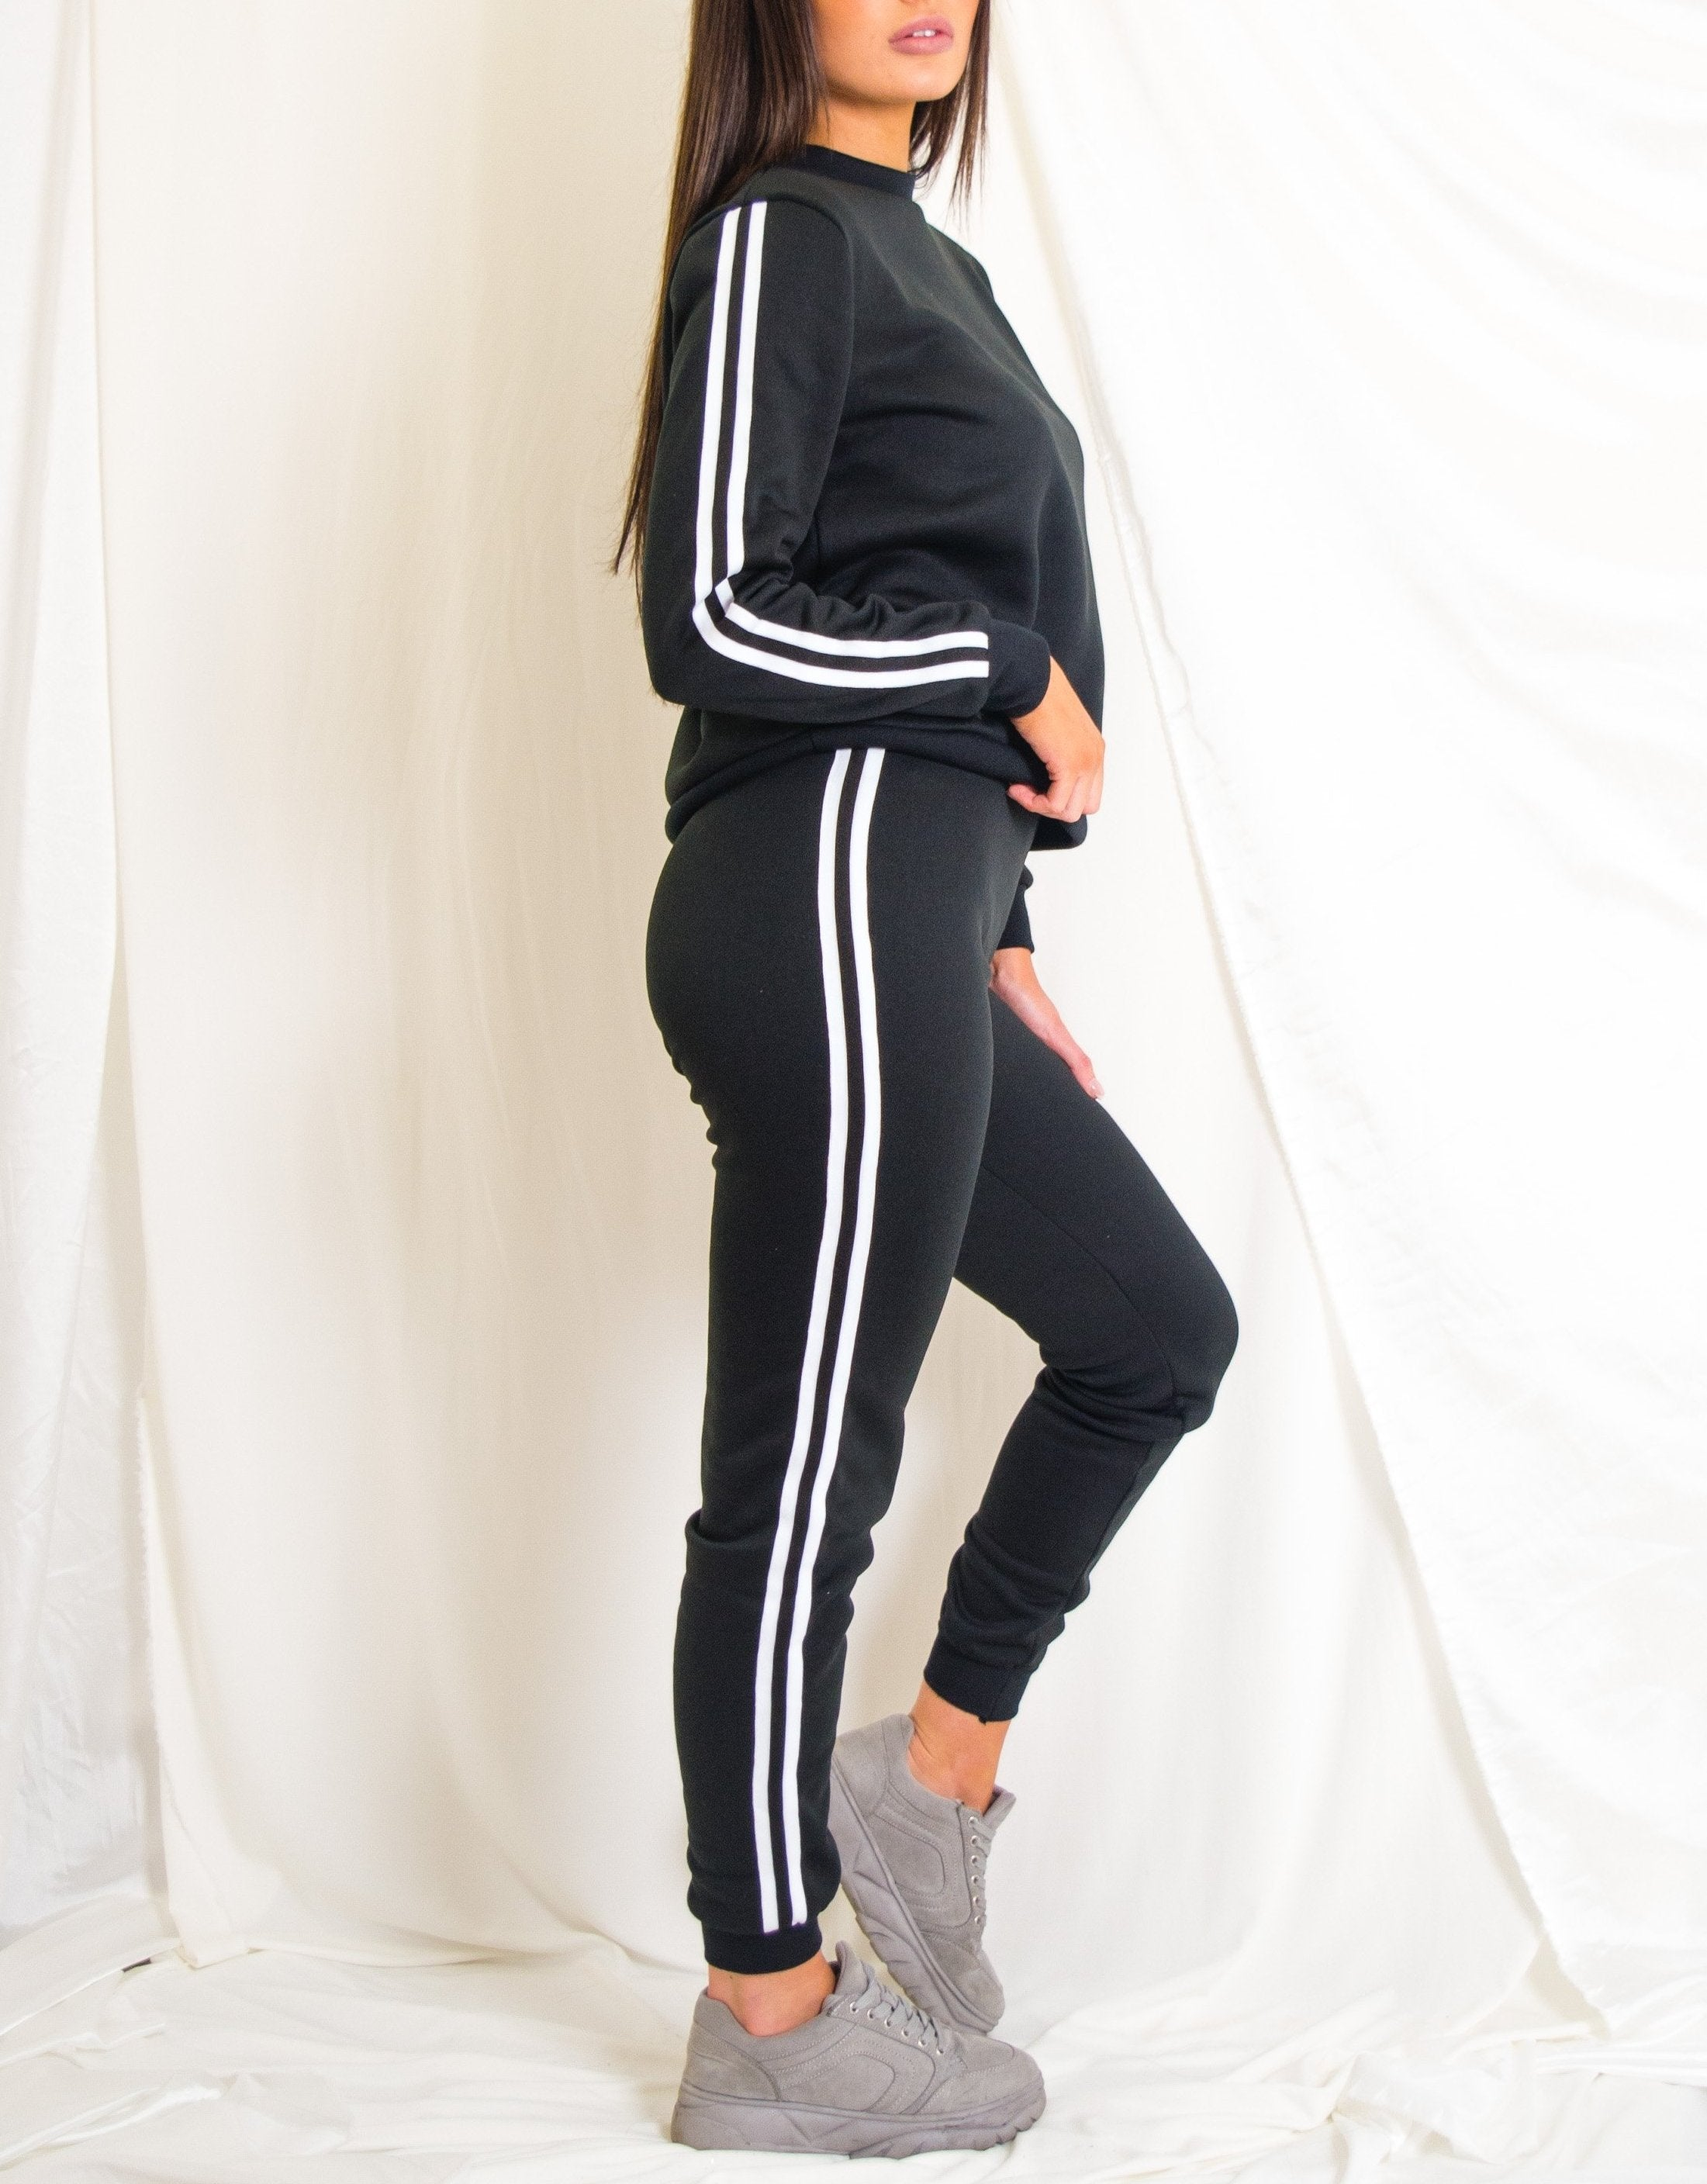 Black Tracksuit With White Striping